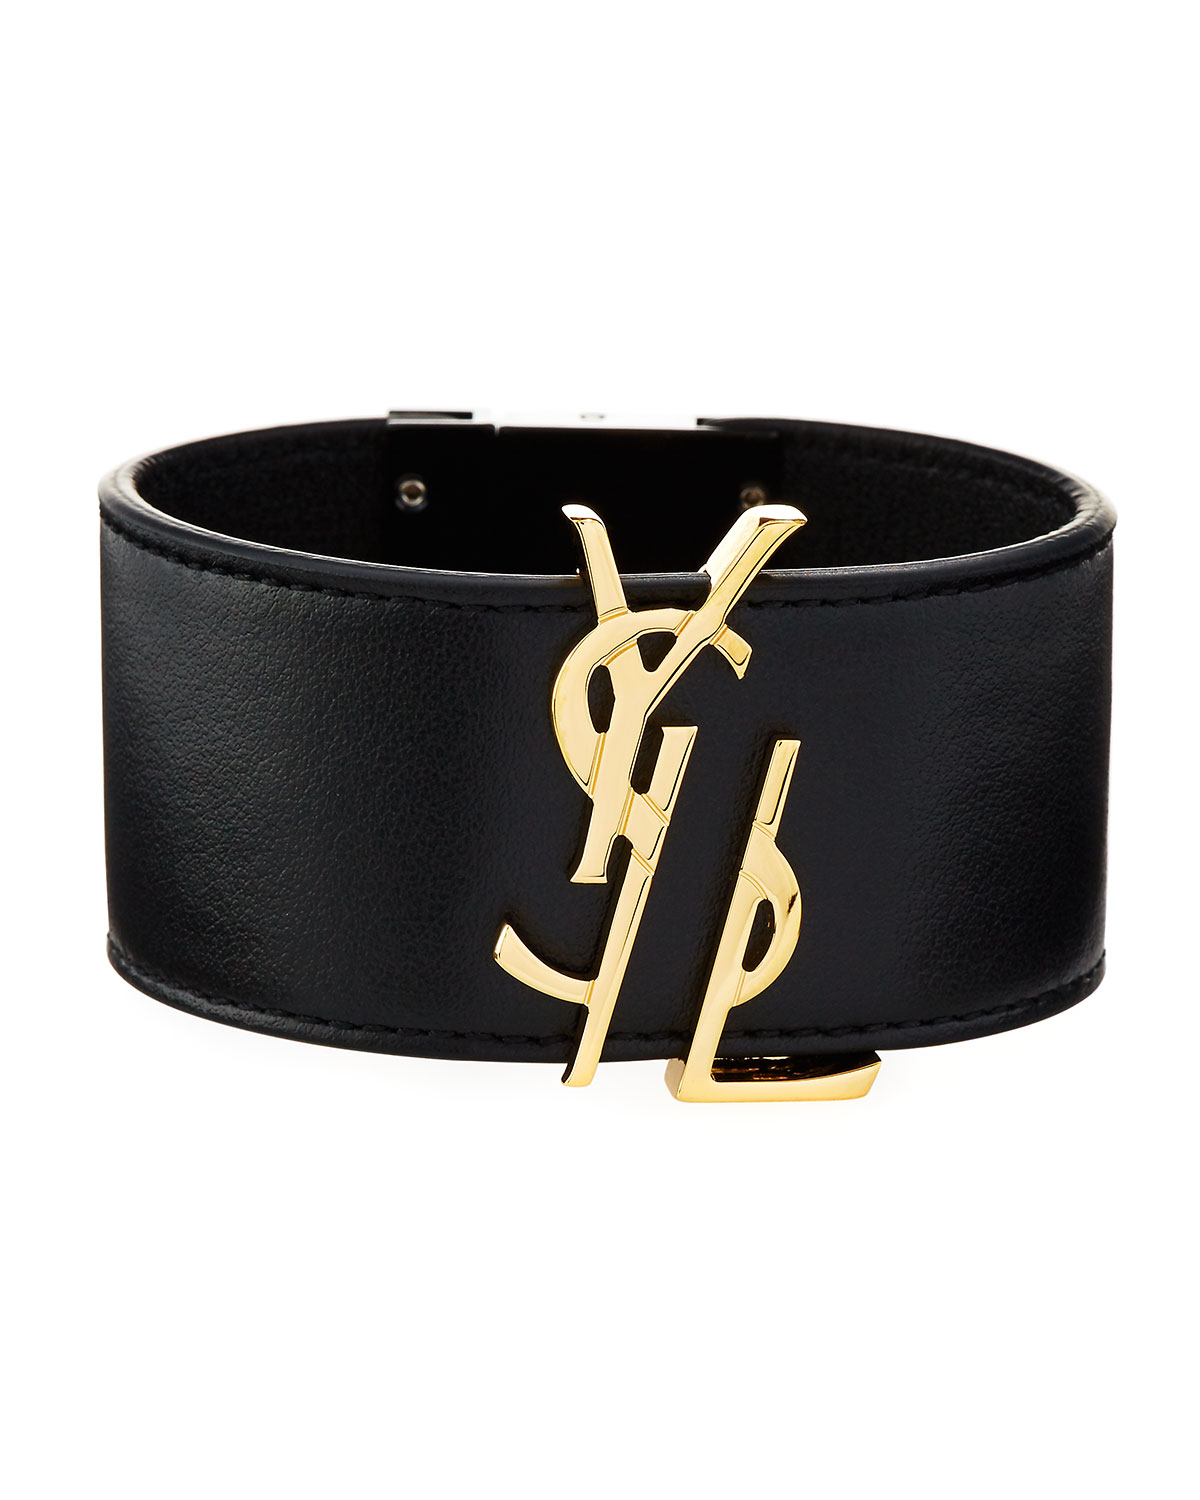 f0c0cfb88c0 Saint Laurent YSL Leather Cuff Bracelet, Black | Neiman Marcus